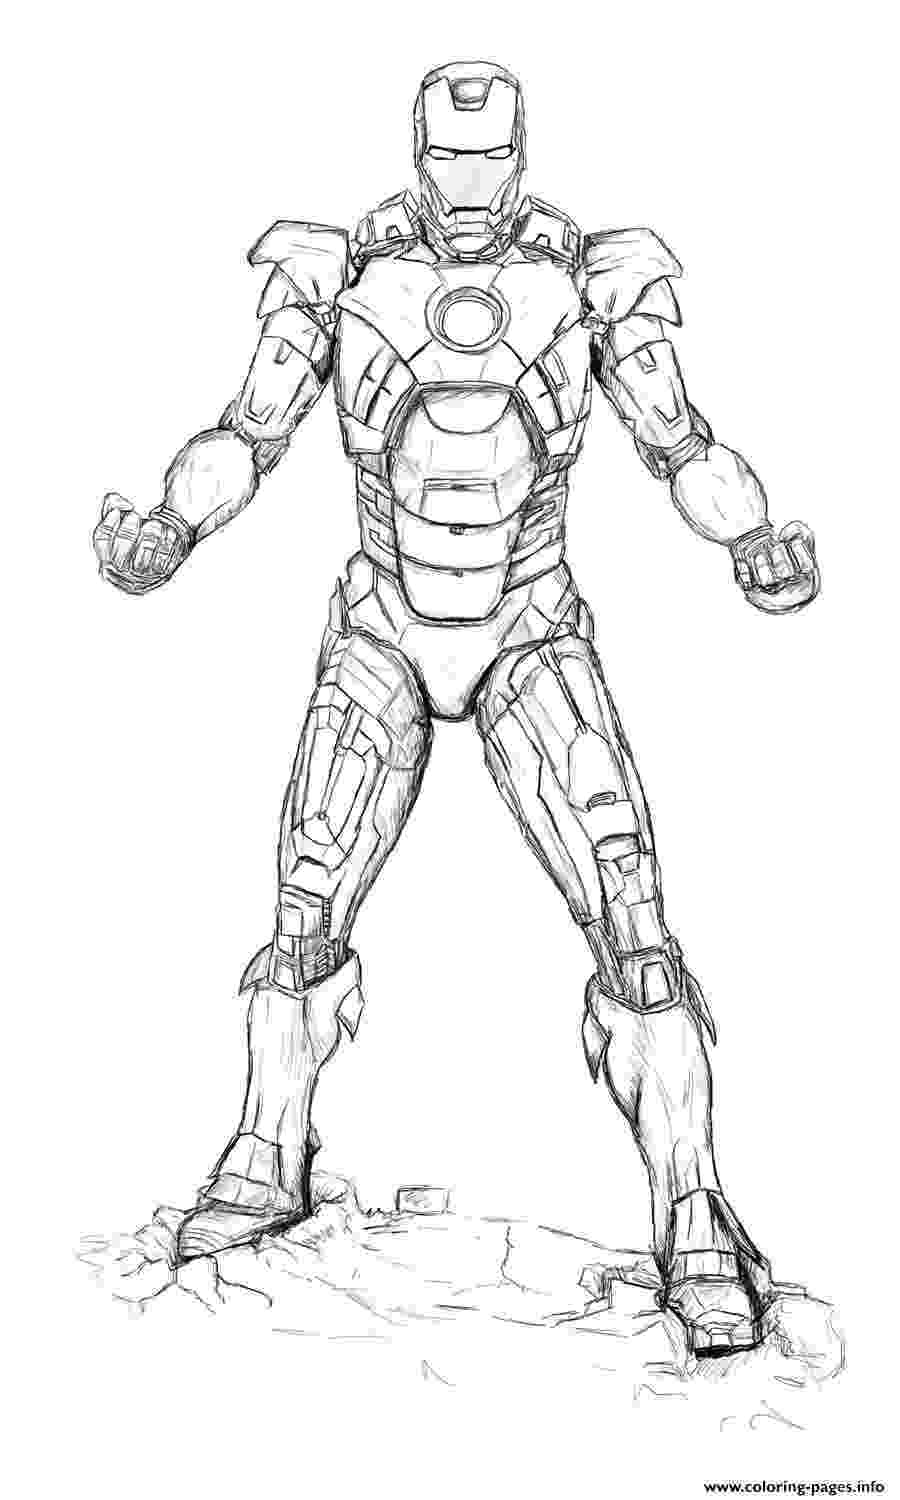 iron man printable images free printable iron man coloring pages for kids best images iron printable man 1 1